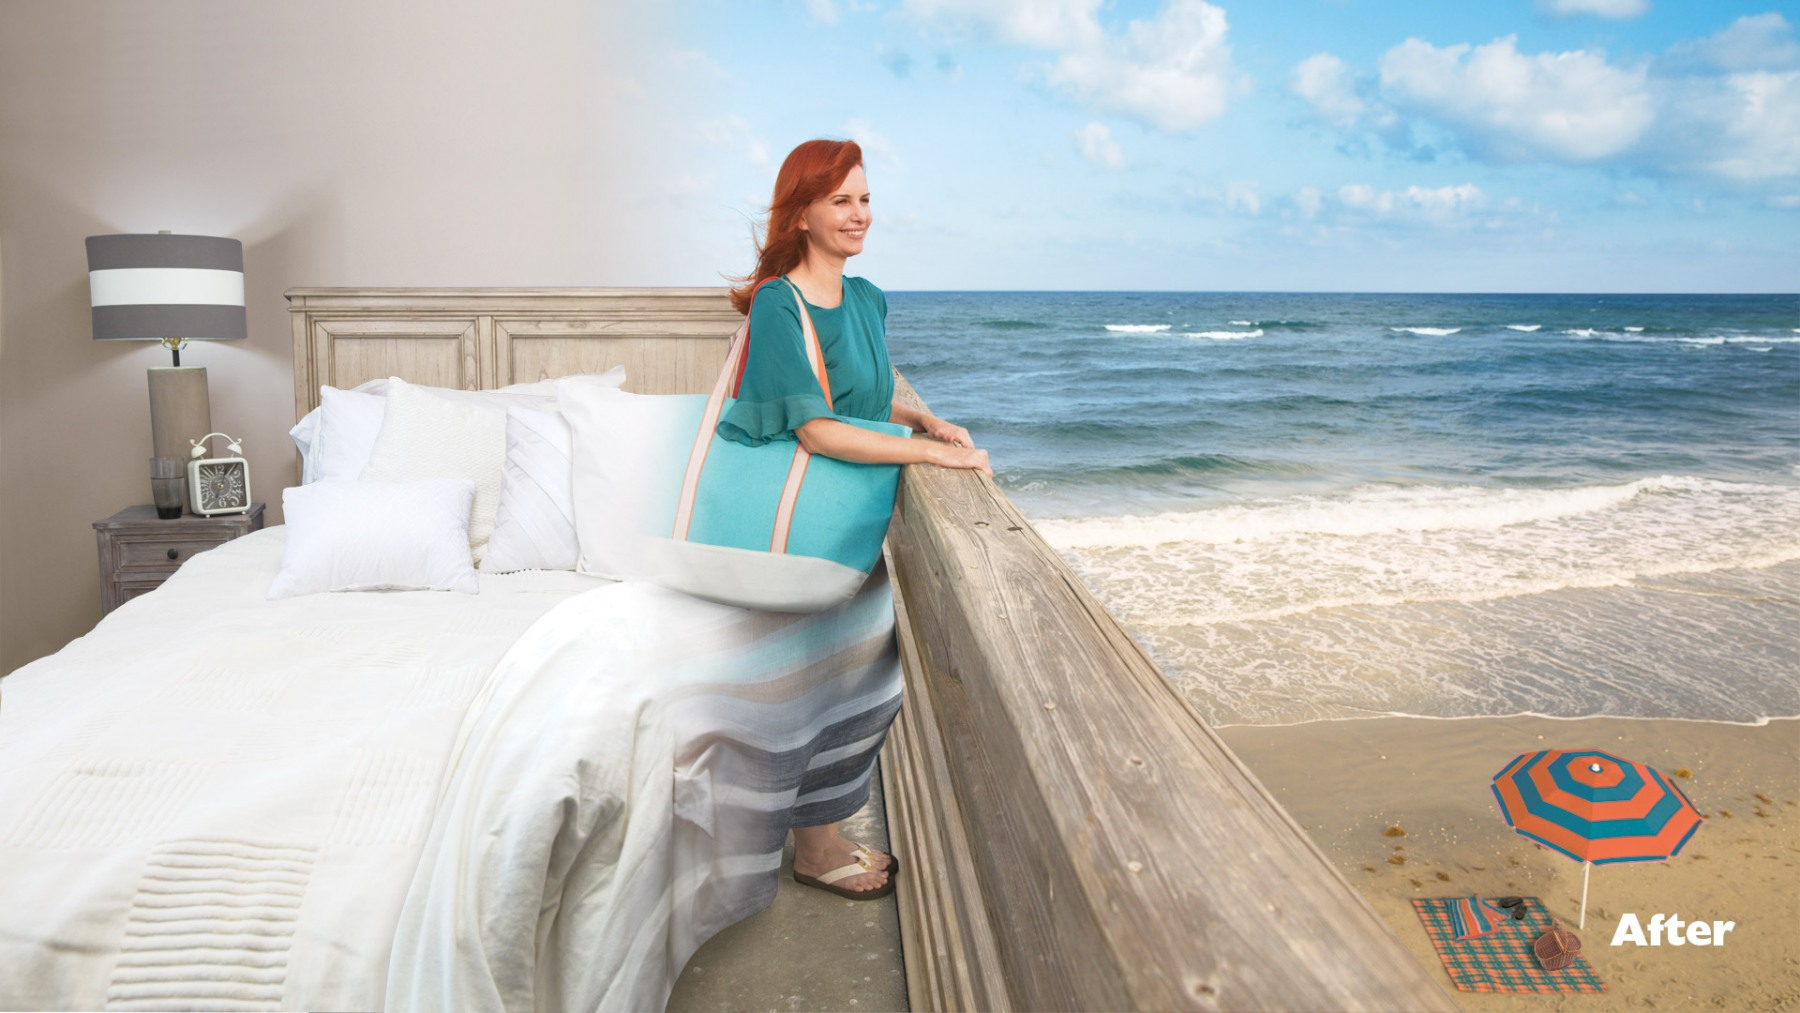 BED TO BEACH WOMAN AFTER